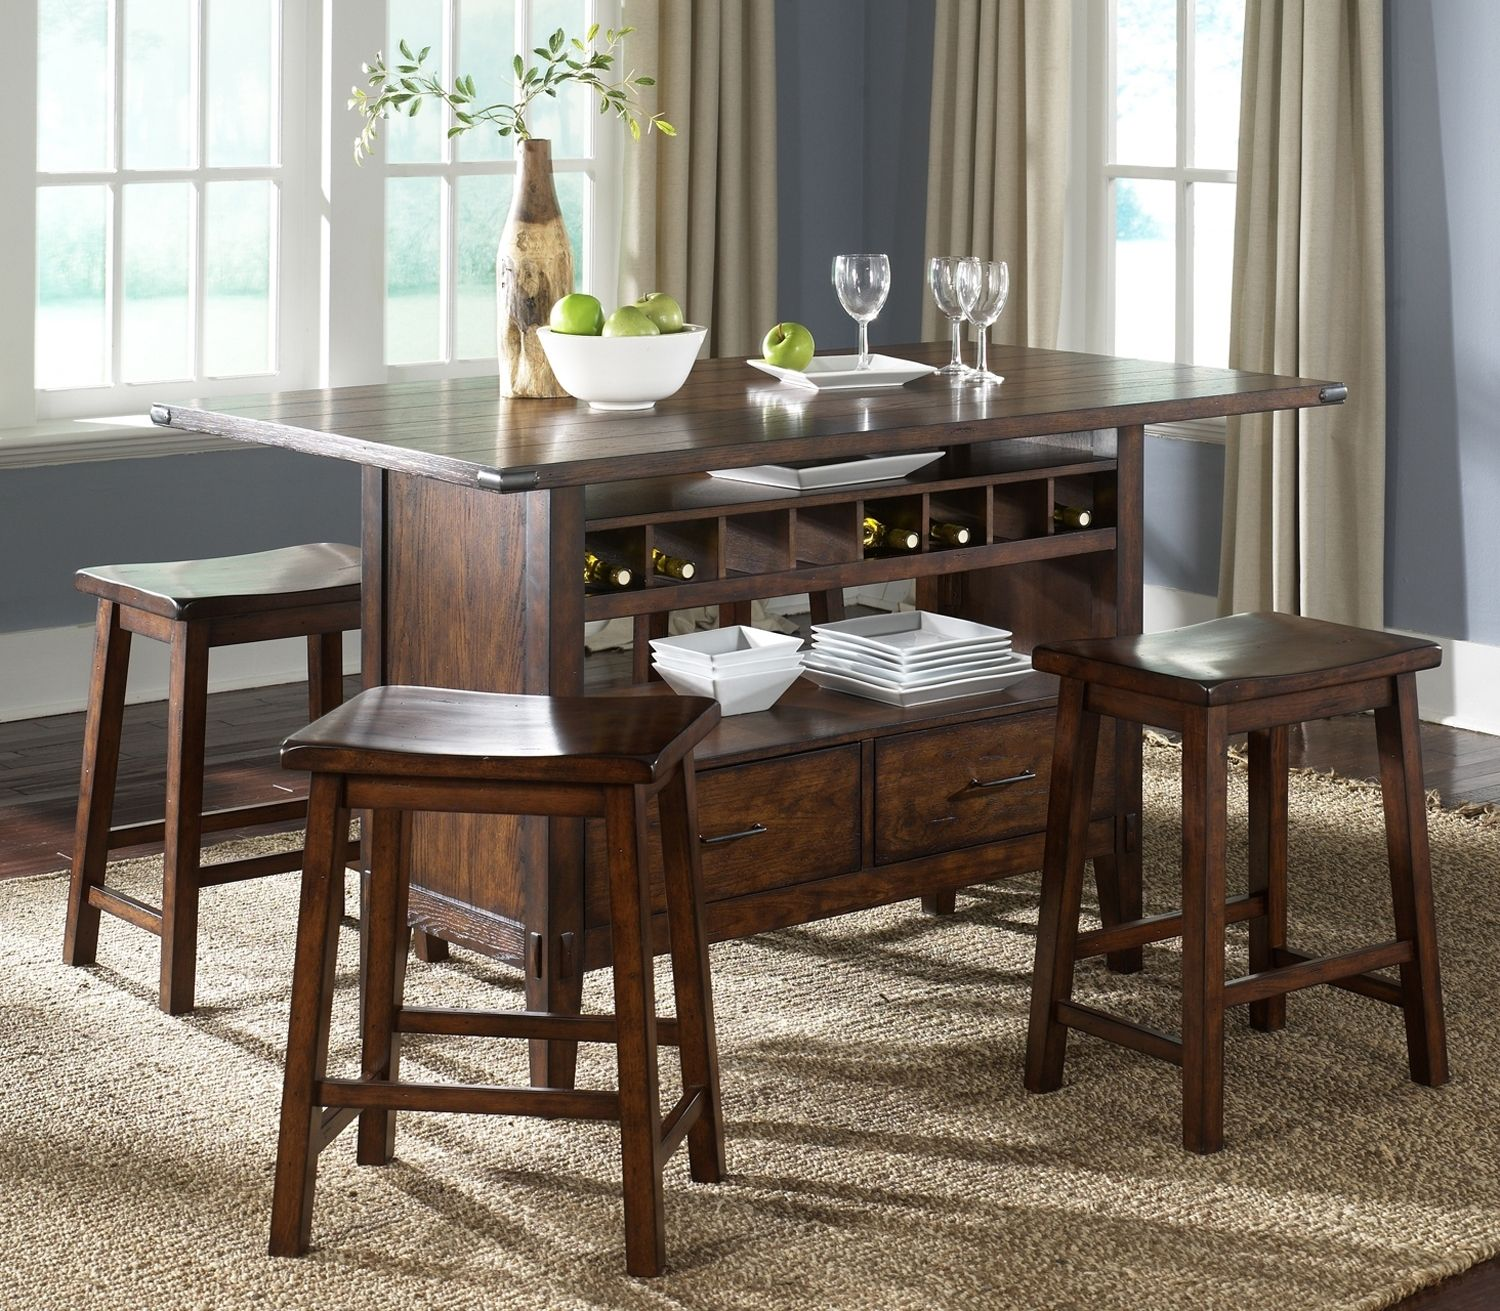 Laura casual dining collection leons furniture and small liberty furniture cabin fever formal center island dining table in bistro brown workwithnaturefo